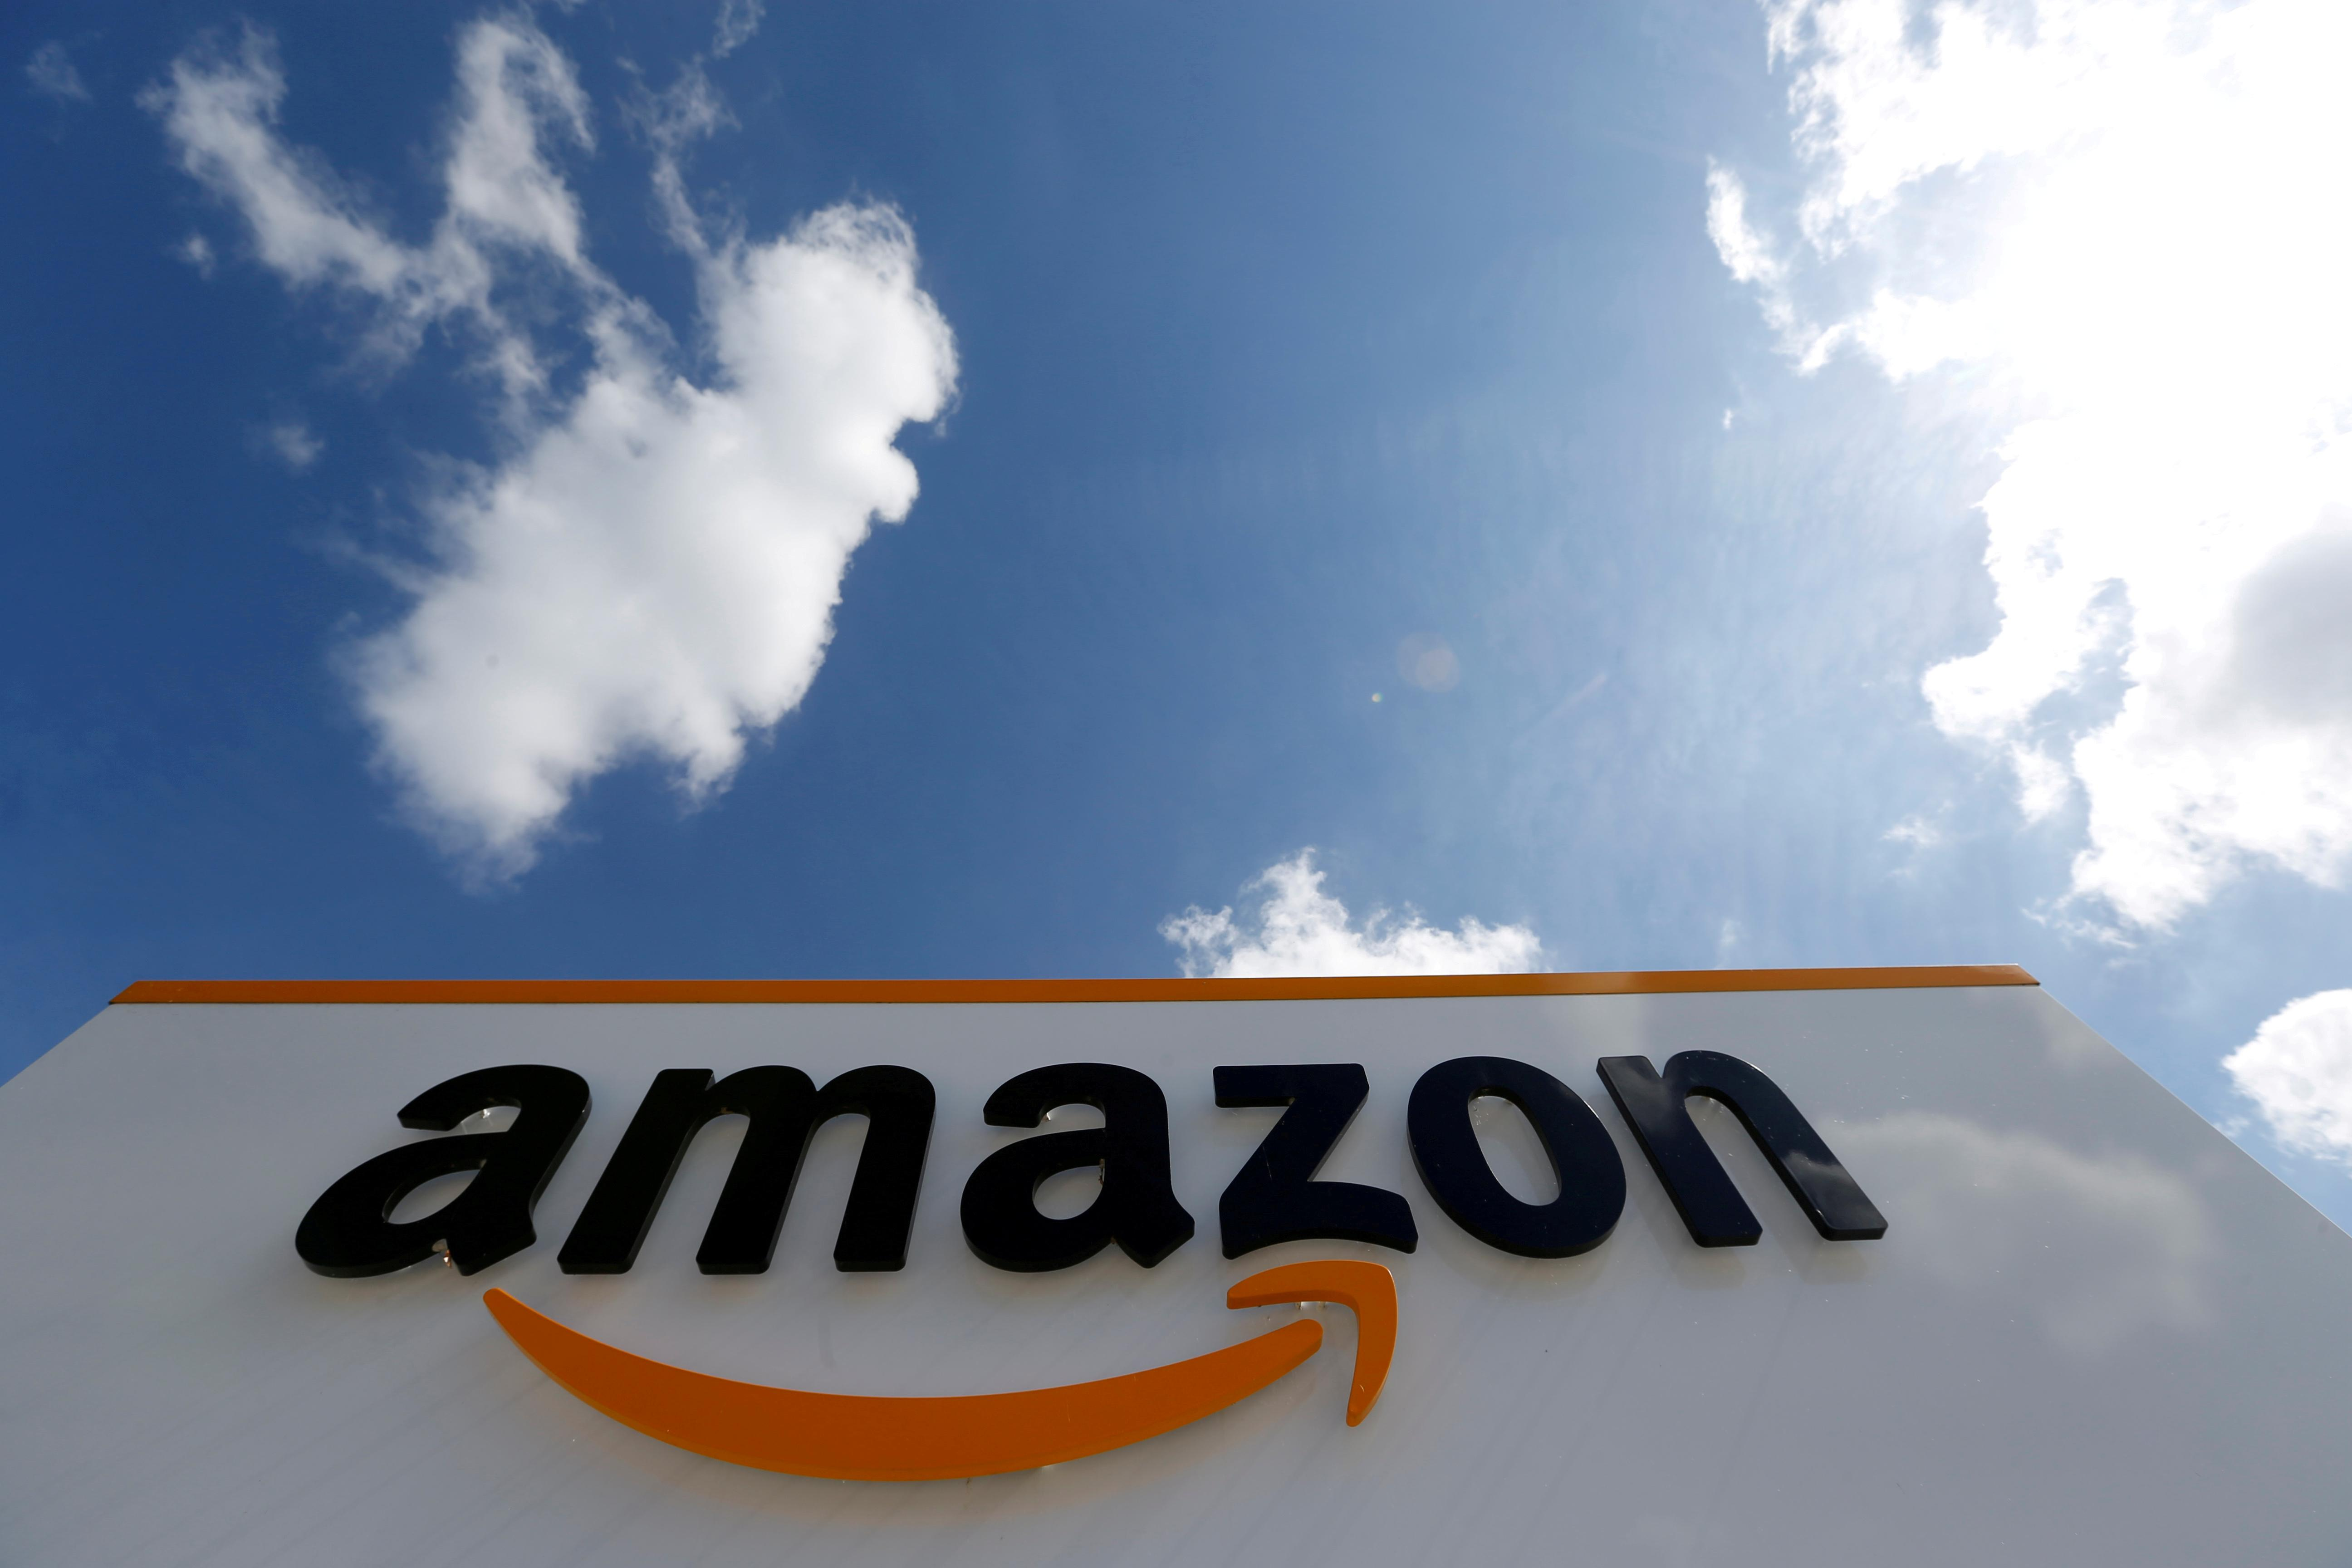 India warns foreign e-commerce firms like Amazon, Flipkart over discounts: sources